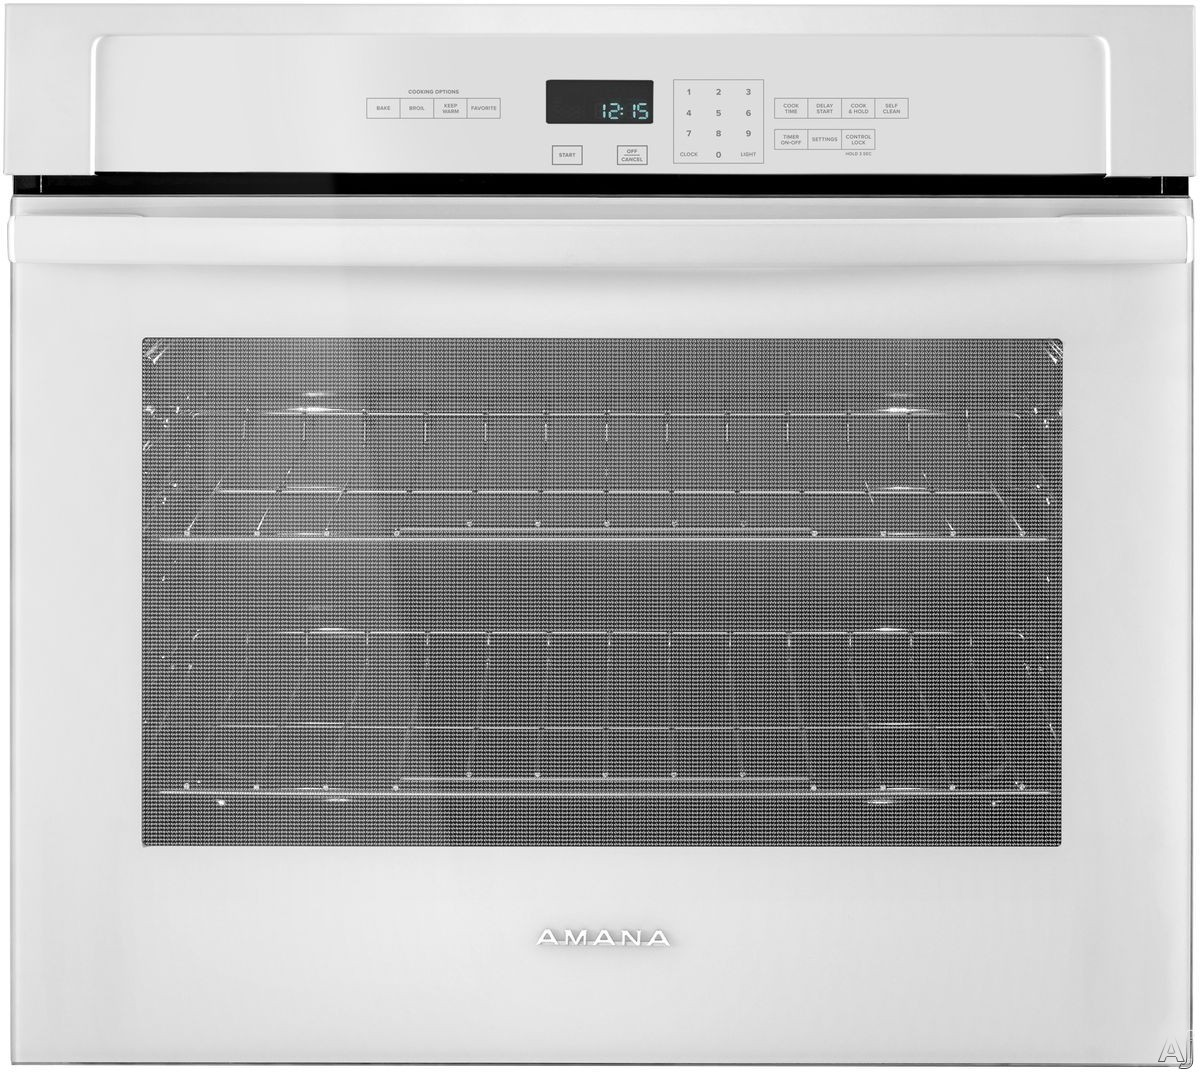 Picture of Amana AWO6313SFW 30 Inch Single Electric Wall Oven with 5 cu ft of Capacity Temp Assure Cooking System Hidden Bake Element Incandescent Lighting Fit System Self-Cleaning ADA Compliant and Sabbath Mode White